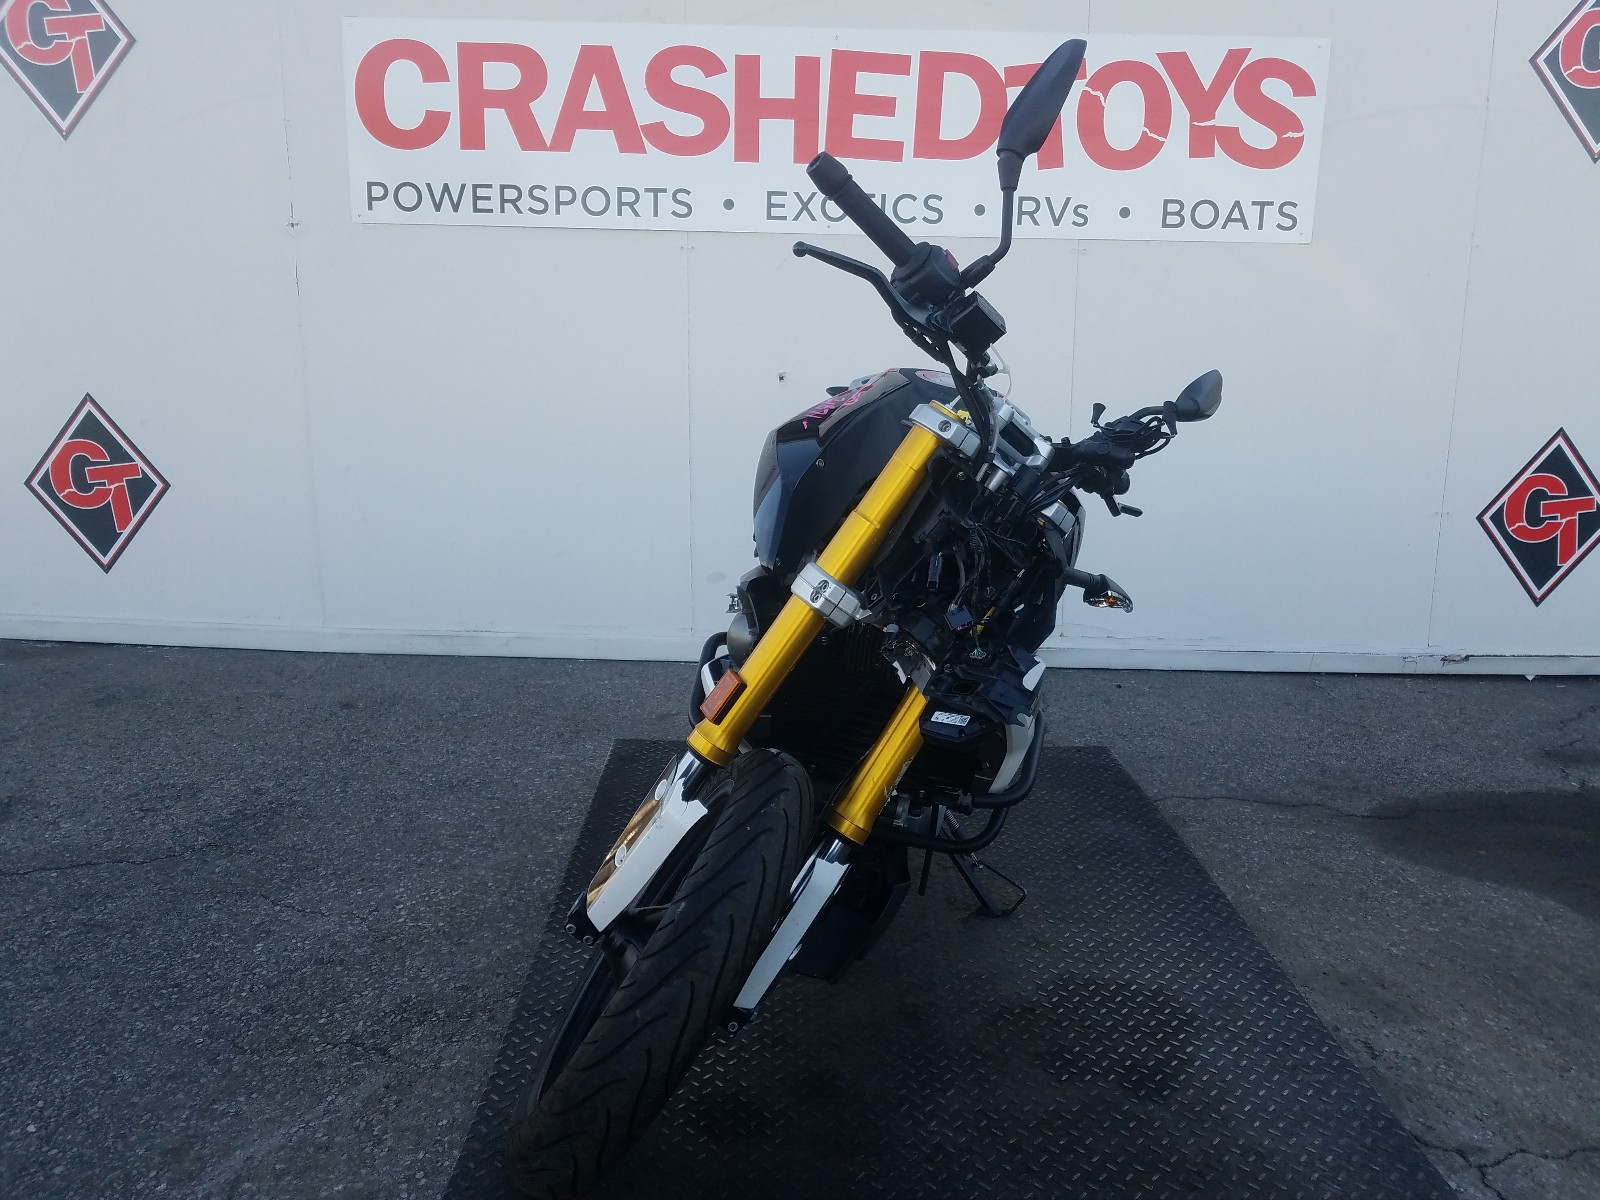 WB30G1105KR857854 - 2019 Bmw G310 R 1 Right View